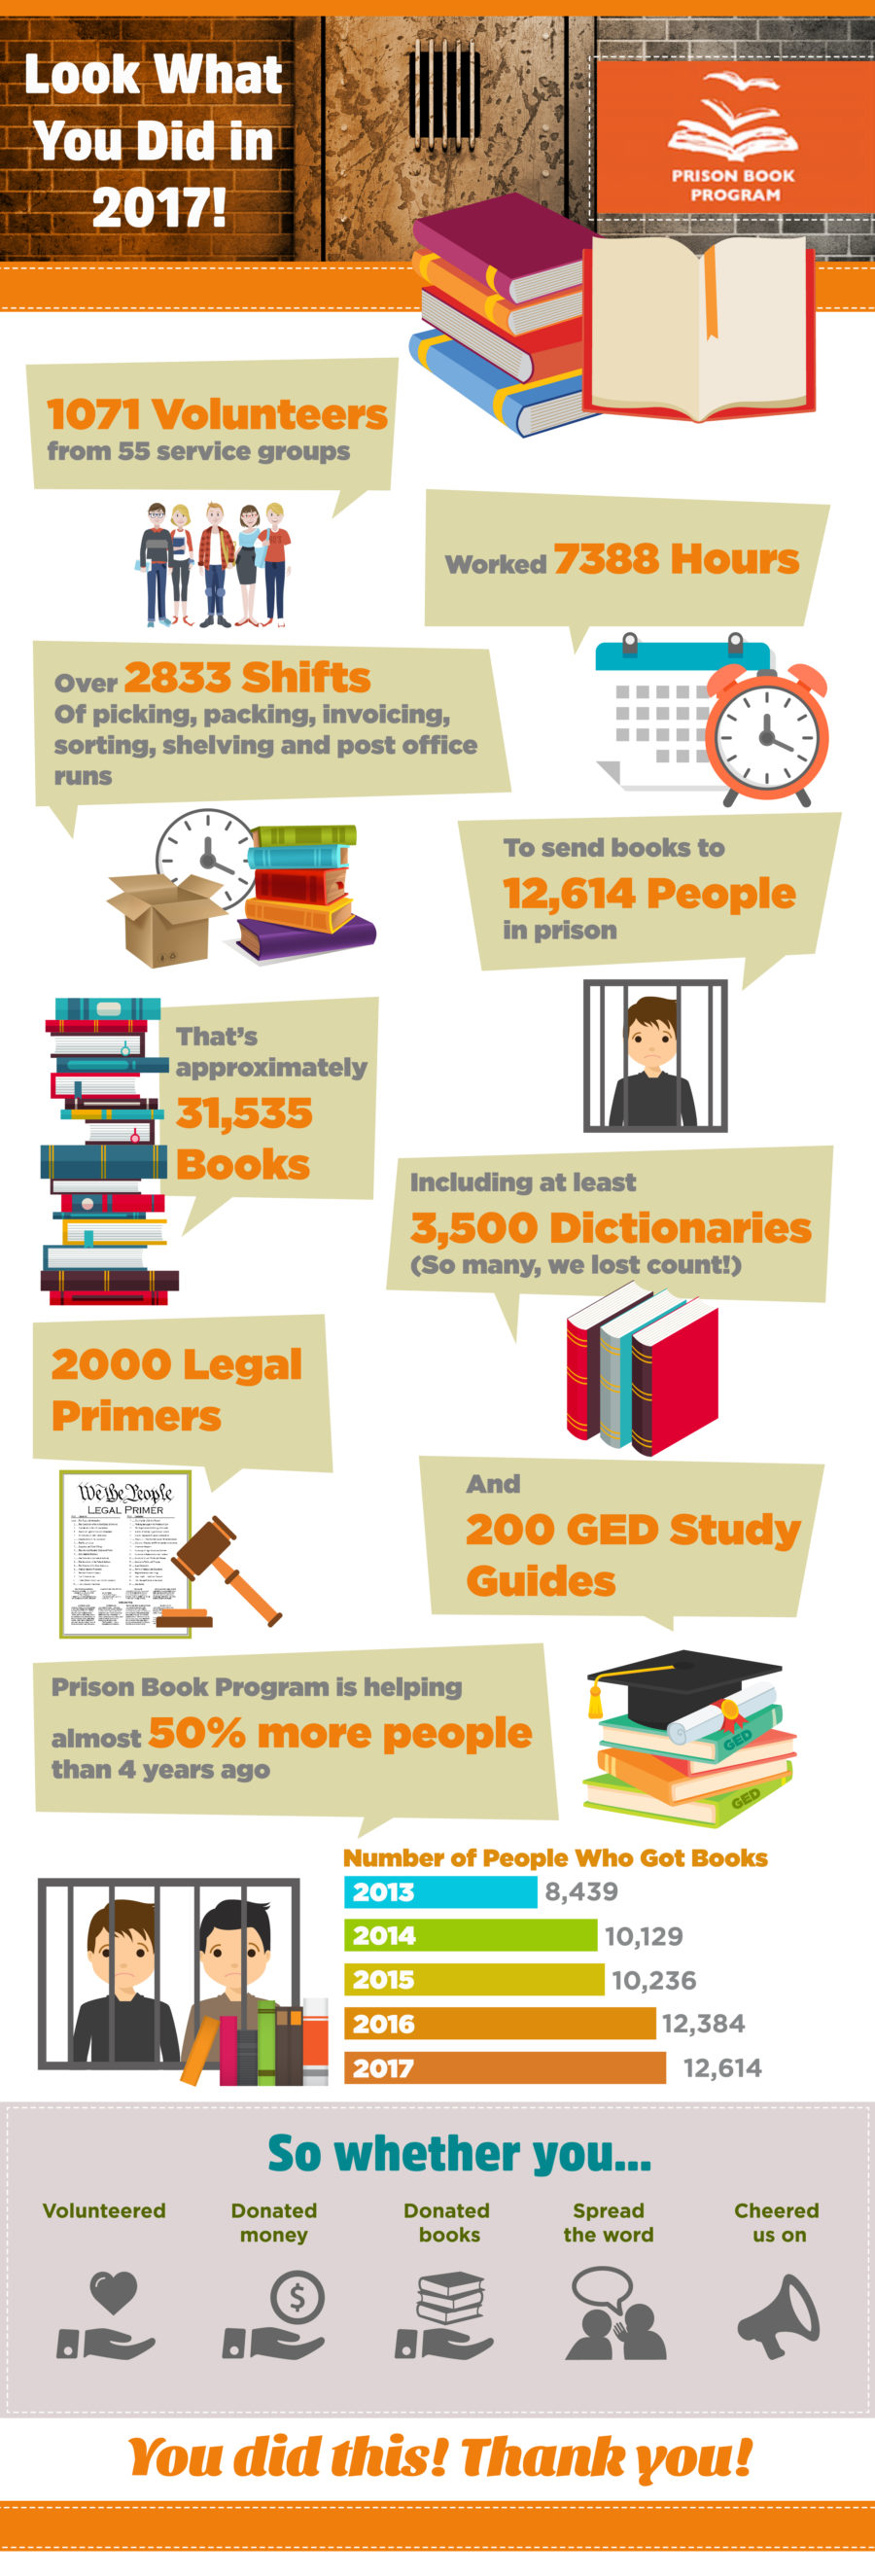 A 2017 infographic from the Prison Book Program